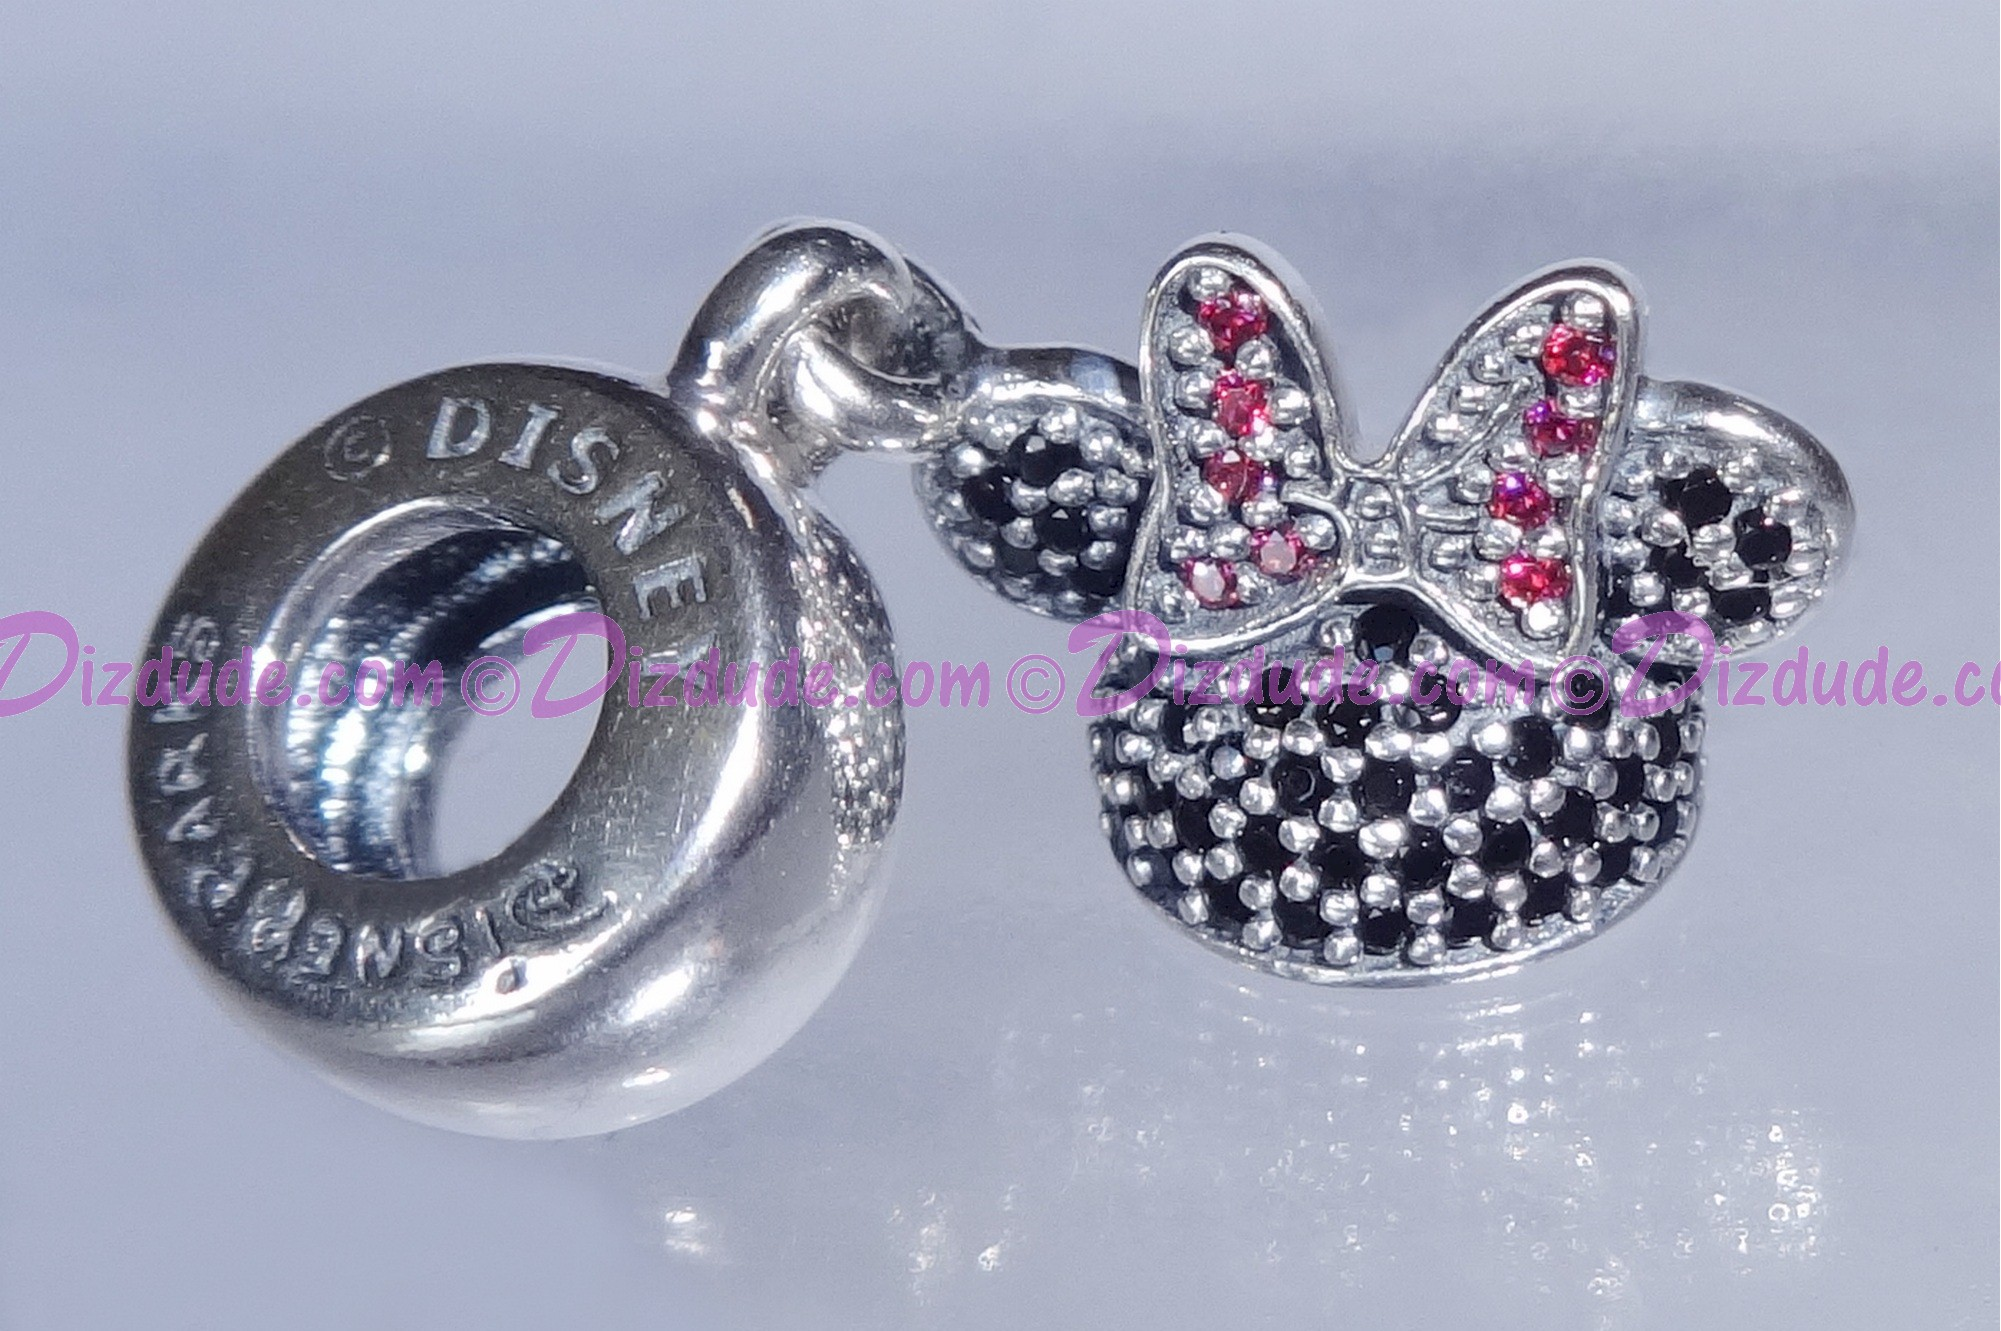 """(SOLD OUT) Disney Pandora """"Minnie Sparkling Ear Hat"""" Sterling Silver Charm with Cubic Zirconias - Disney World Parks Exclusive"""